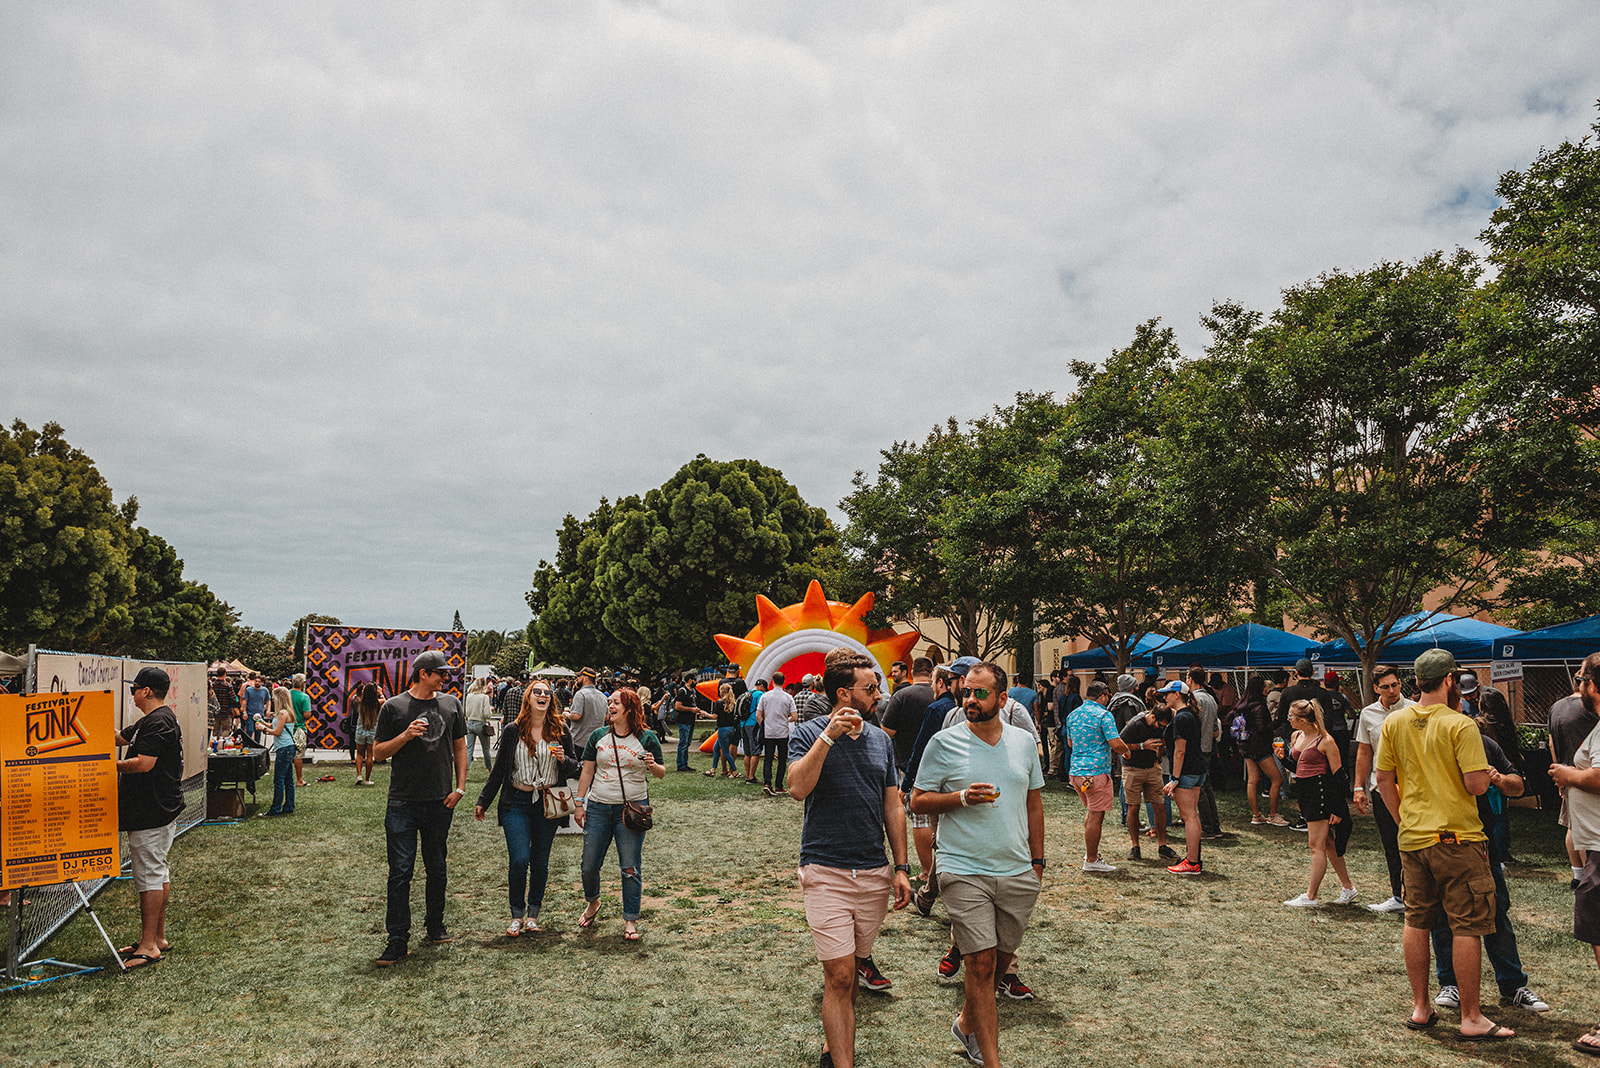 The 75,000 sq.ft. greenbelt was the perfect space for hundreds of vendors to post up and share the tastiest sours and saisons they had curated.